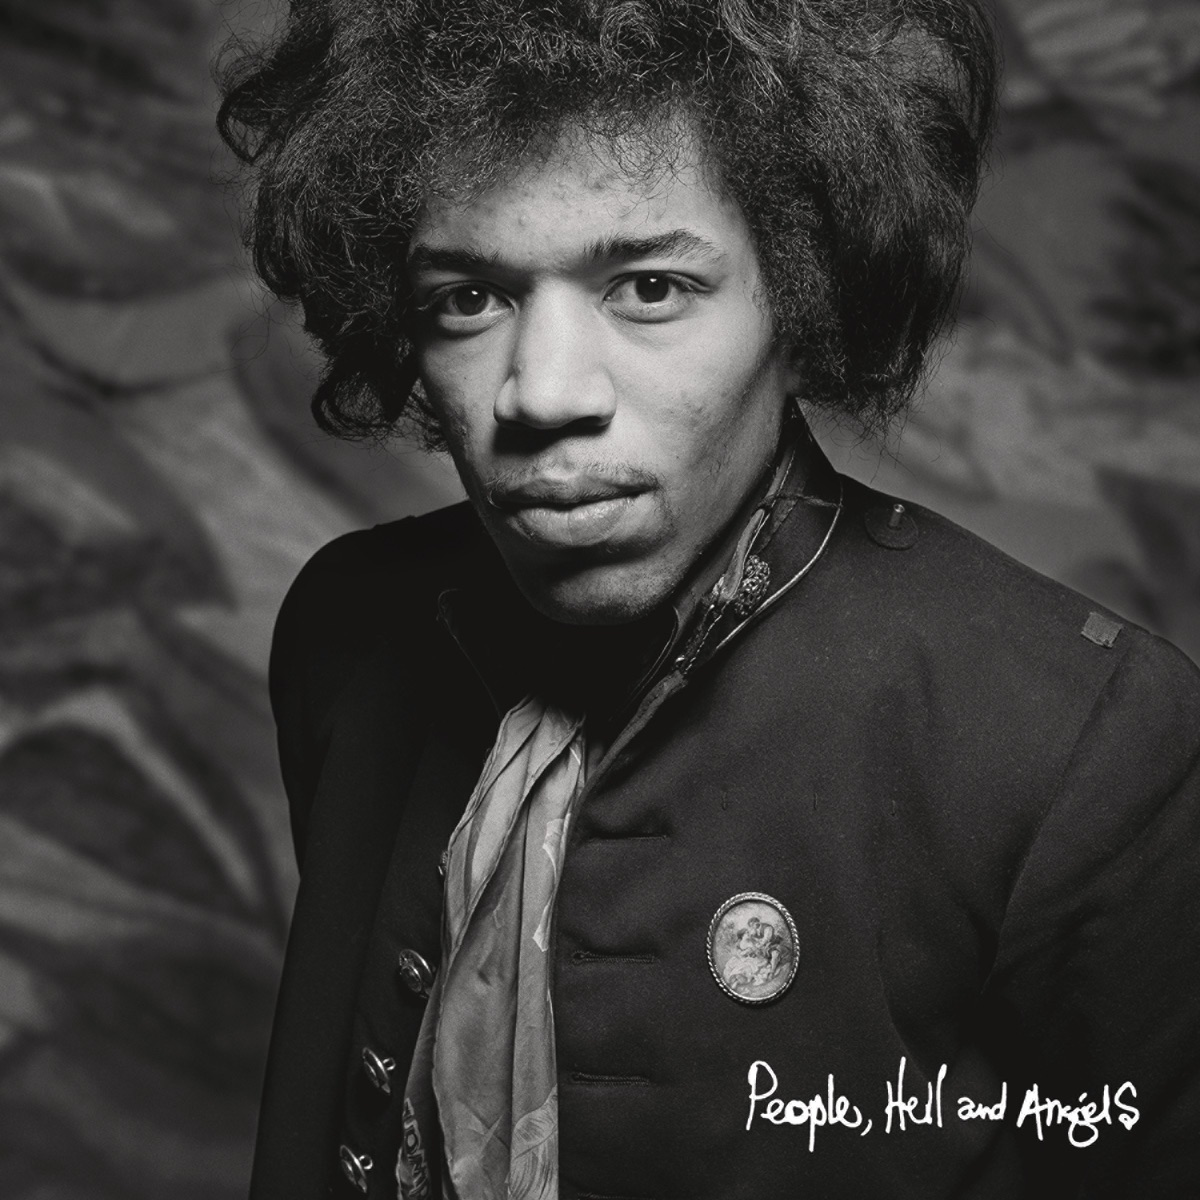 People Hell and Angels Jimi Hendrix CD cover